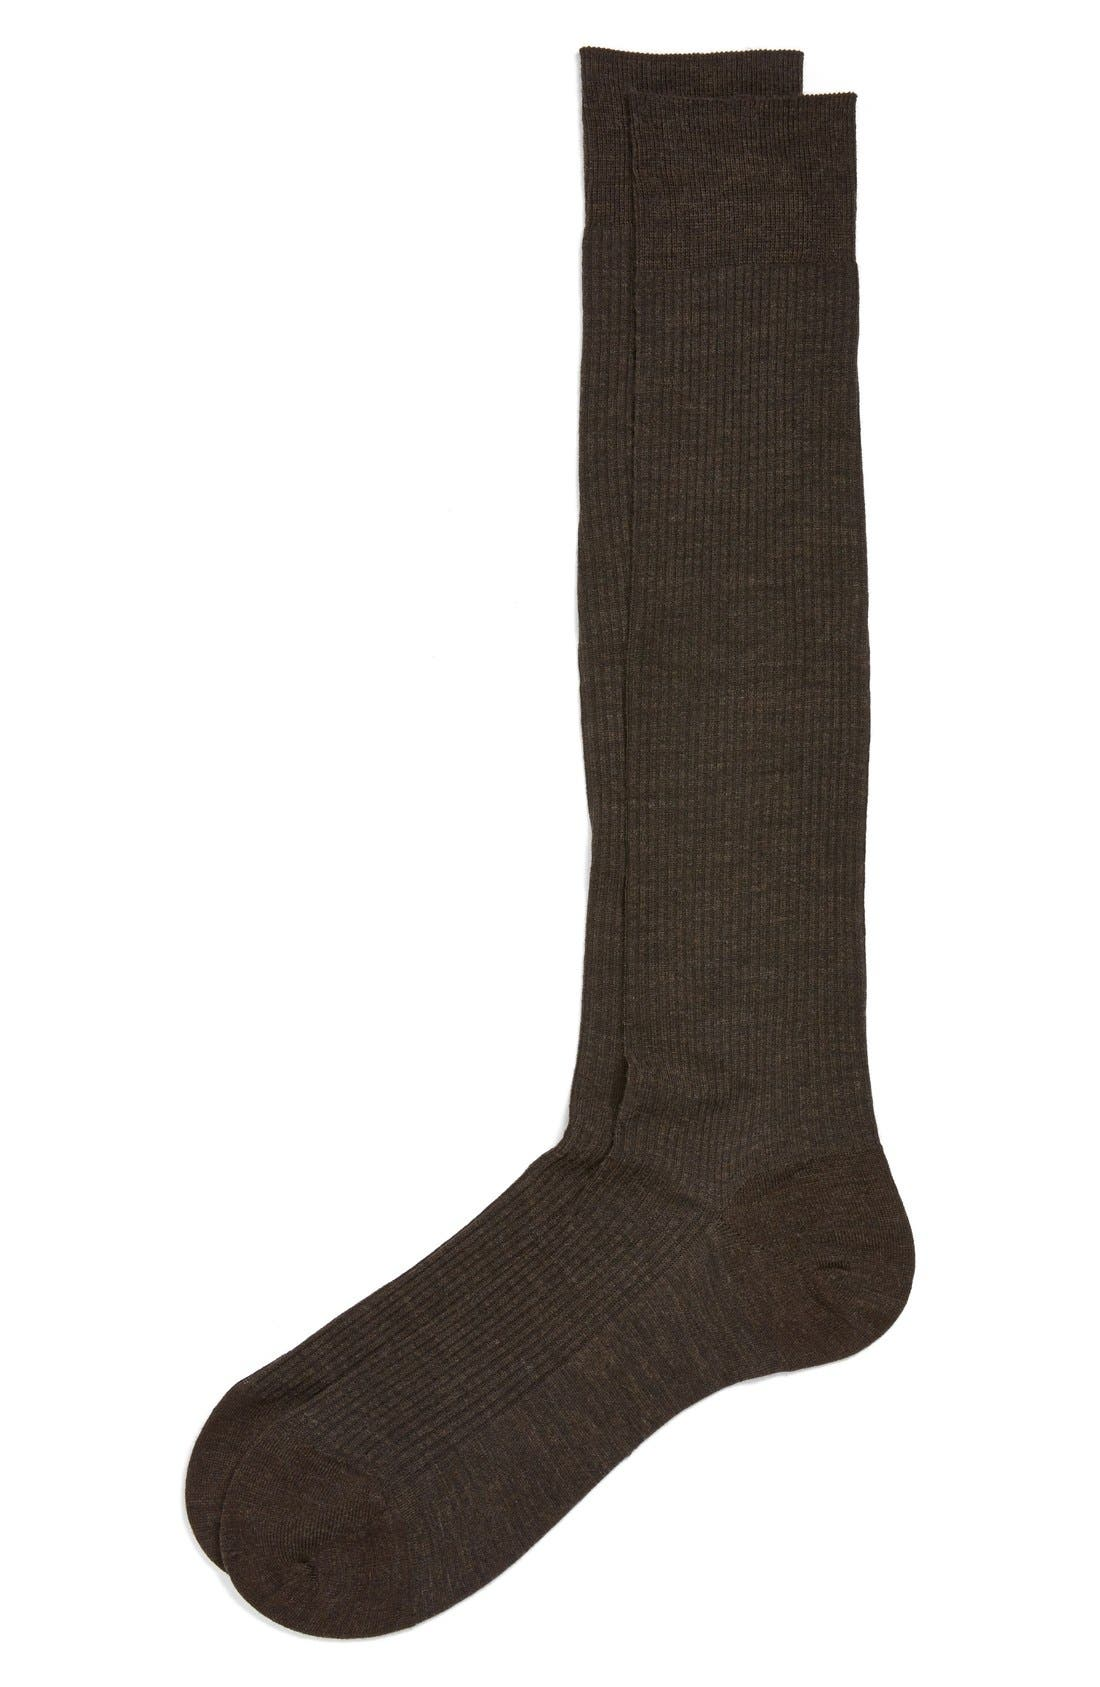 Alternate Image 1 Selected - Pantherella Fine Wool Blend Over the Calf Socks